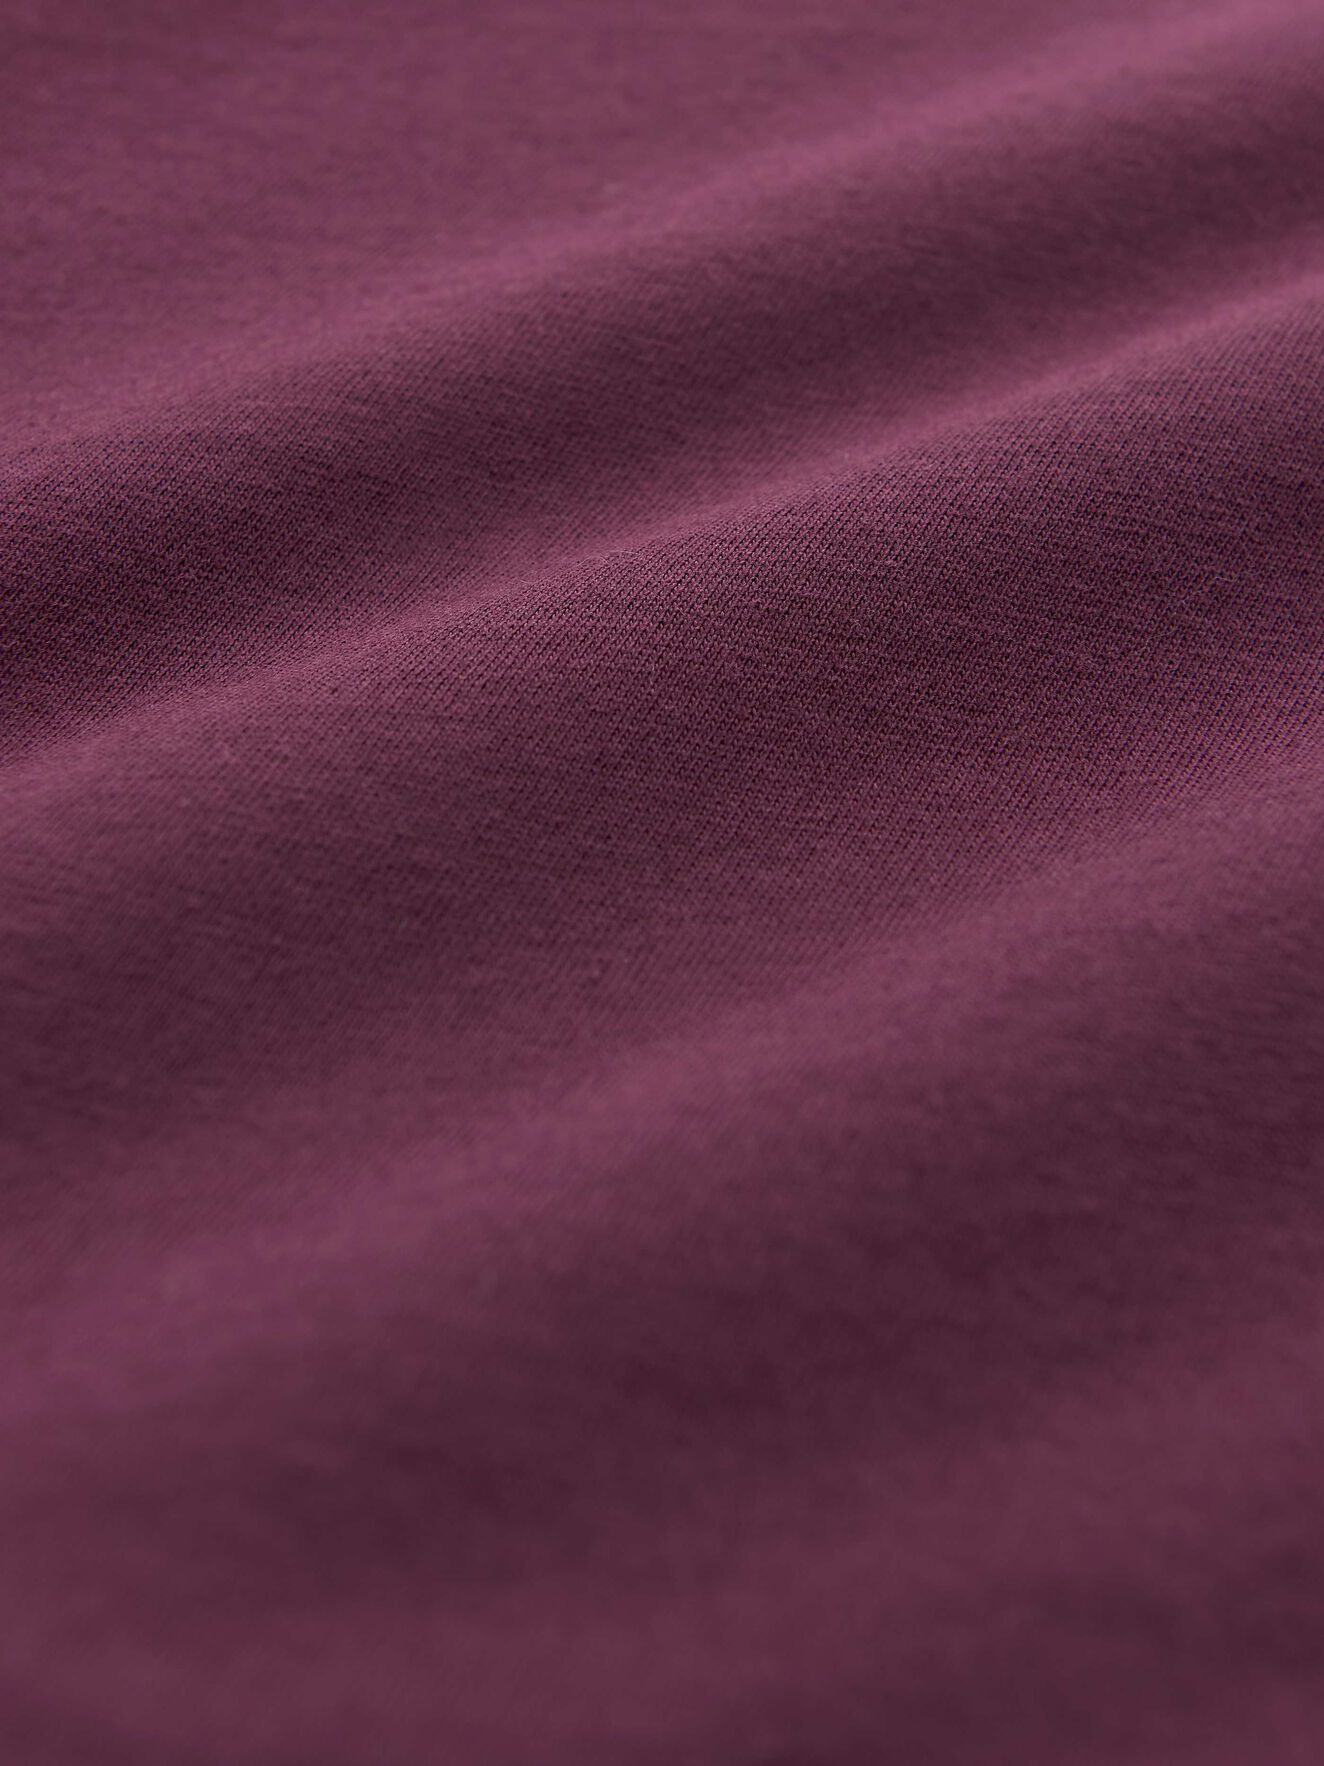 Dawn T-Shirt in Deep Ruby from Tiger of Sweden